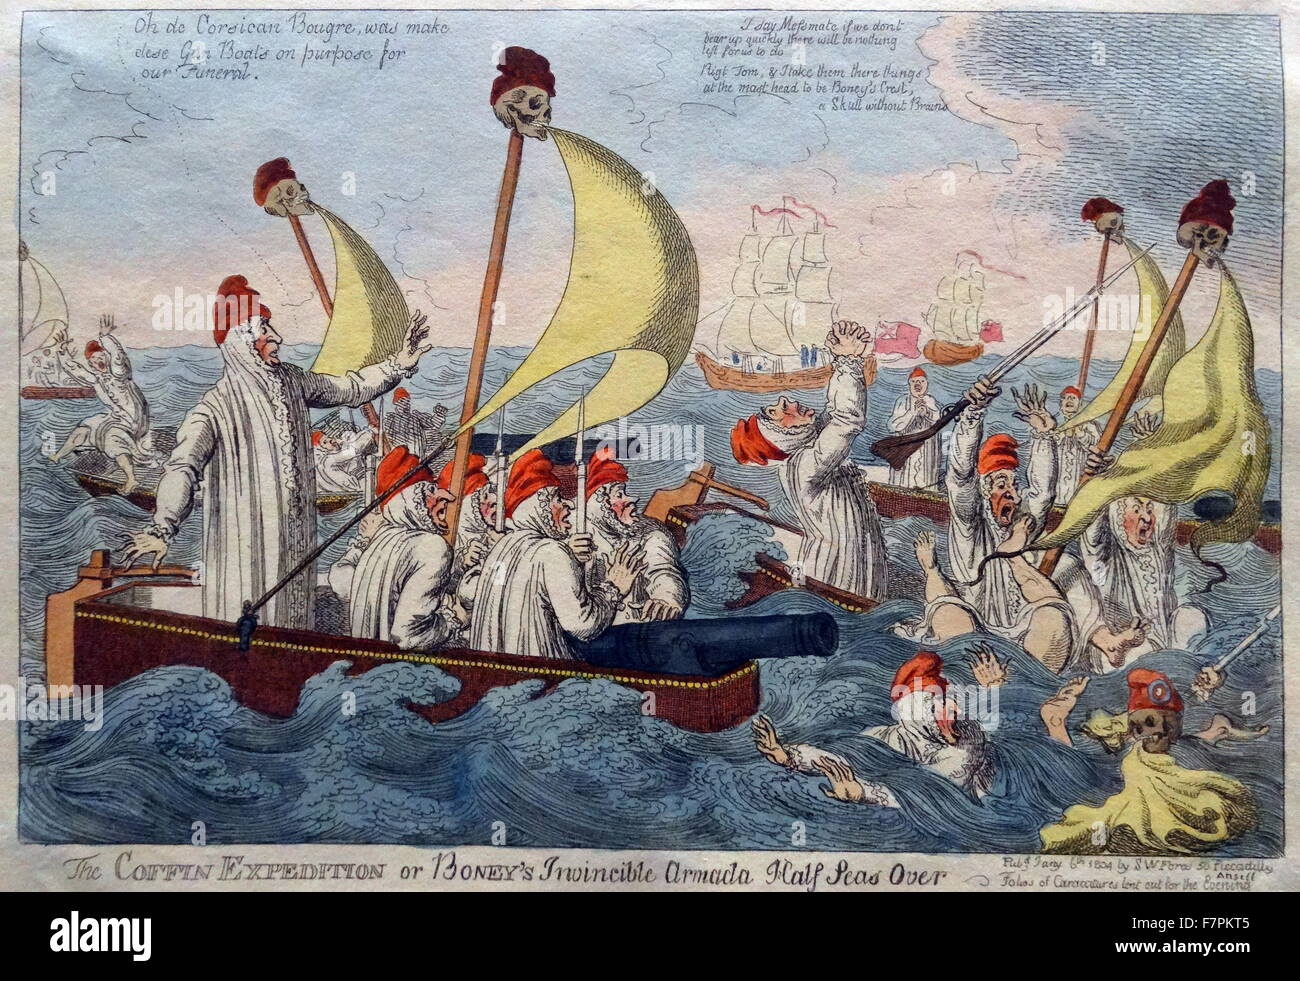 Hand-coloured etching titled 'The Coffin Expedition' by Charles Williams (1797-1830) British printmaker. - Stock Image